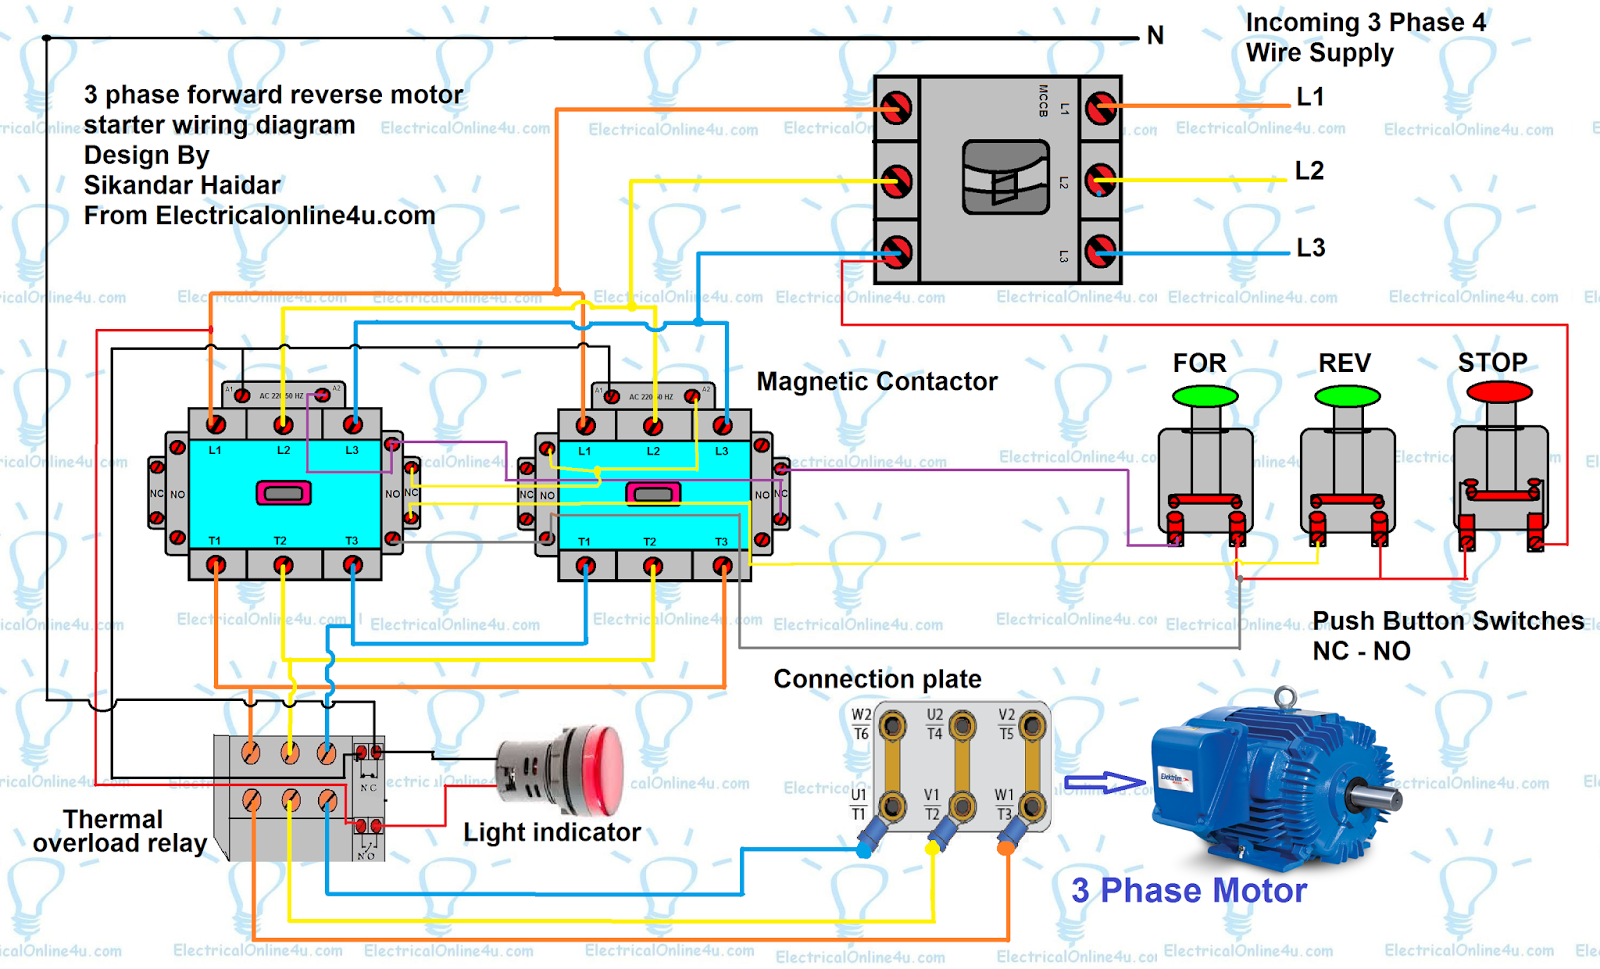 small resolution of forward reverse motor control diagram for 3 phase motor electrical rh pinterest co uk circuit diagram